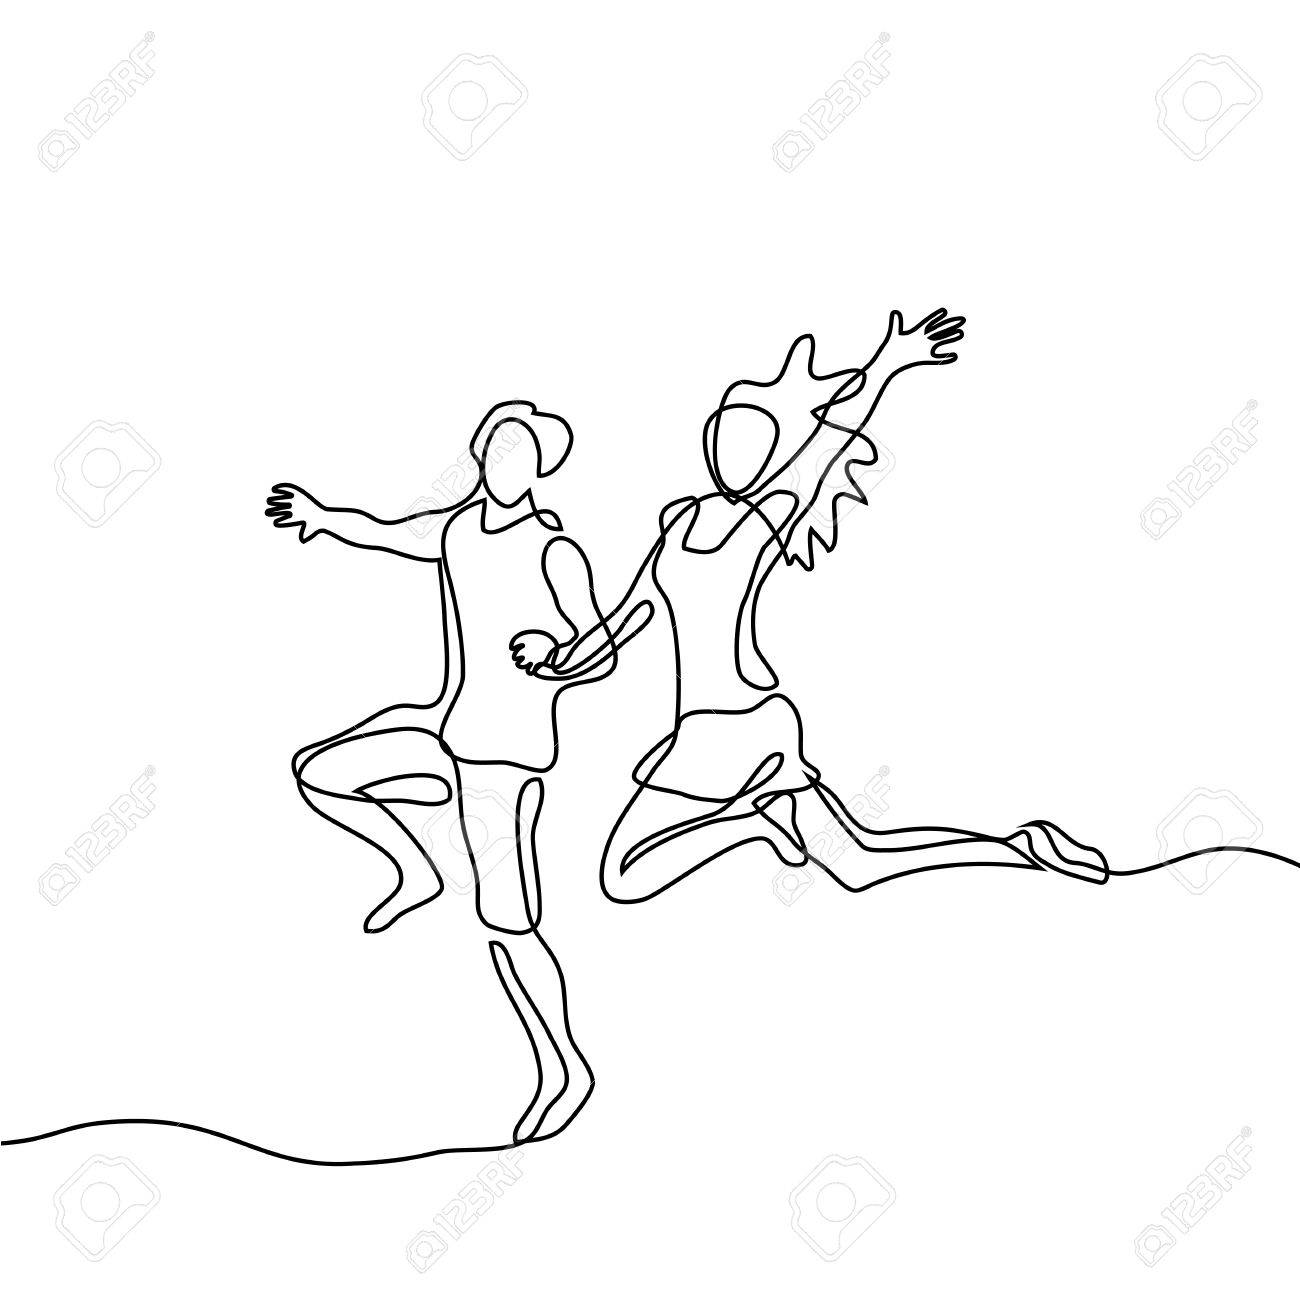 1300x1300 Happy Jumping Couple. Continuous Line Drawing. Vector Illustration